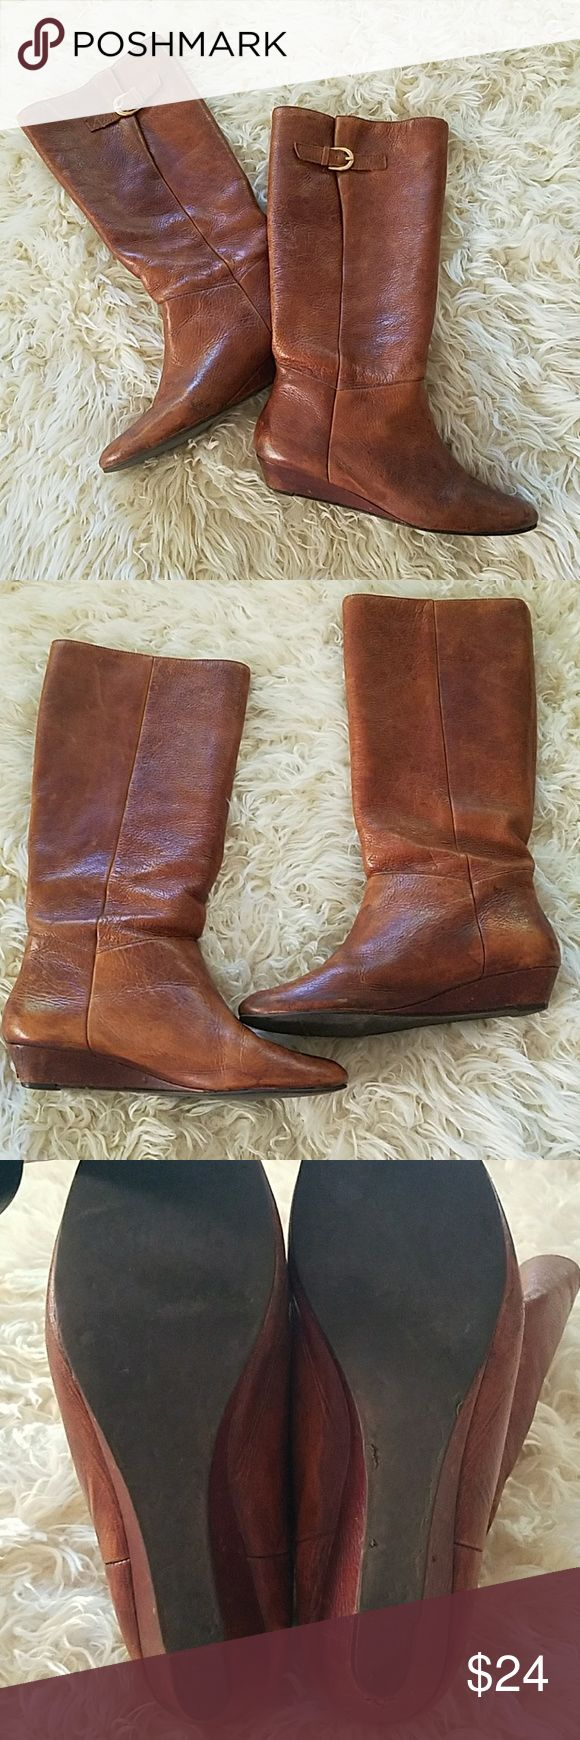 Steve Madden Intyce boots, sz 10 Well loved cognac low wedge riding boot, the ever popular Intyce style by Steve Madden, size 10. Steve Madden Shoes Heeled Boots